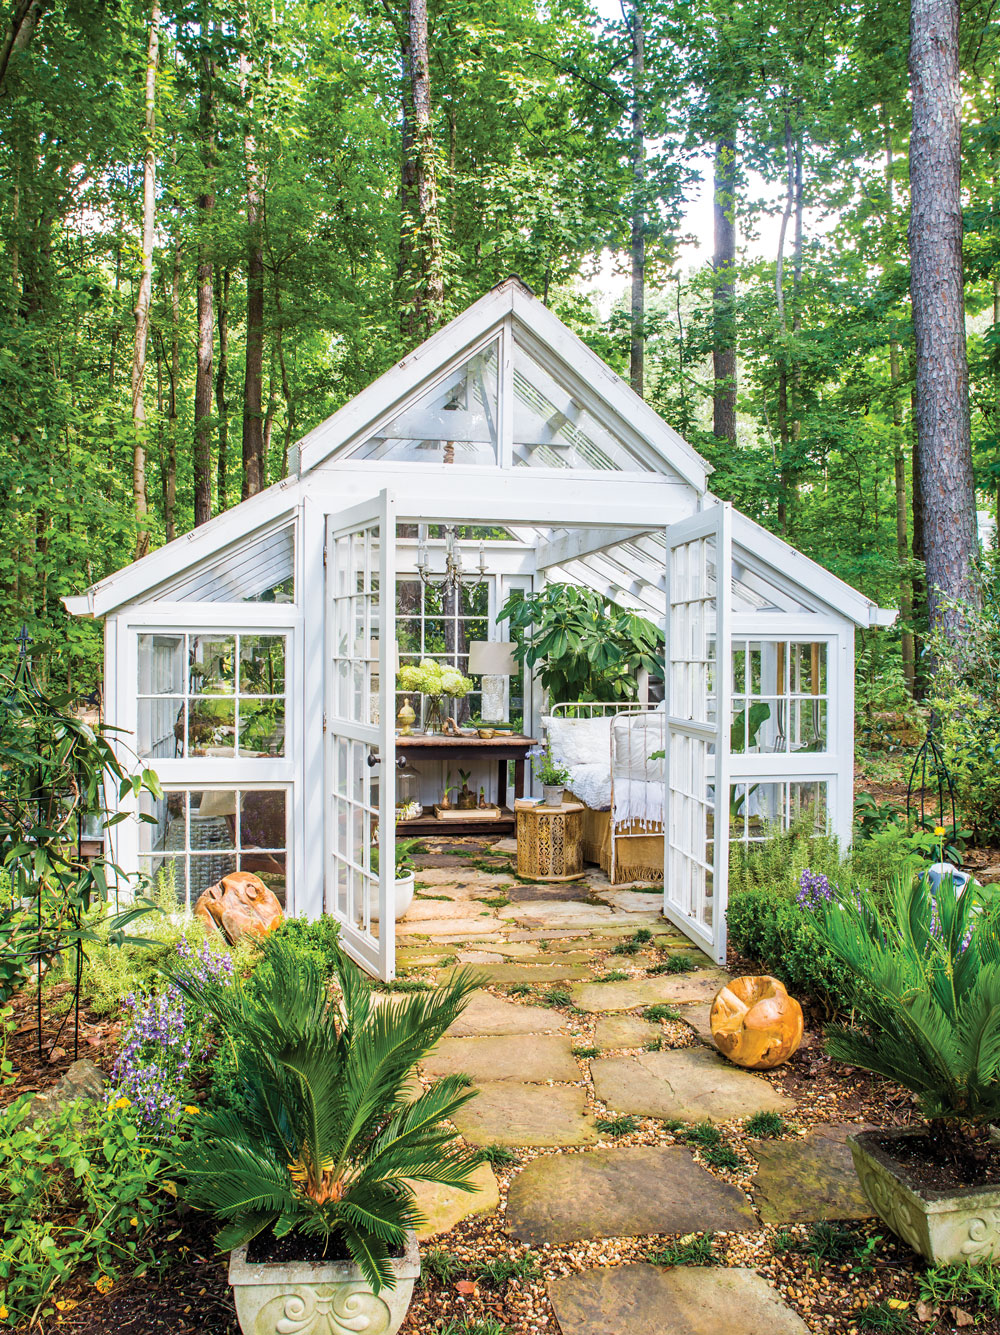 Room Envy: This Glass Garden House In Marietta Is A